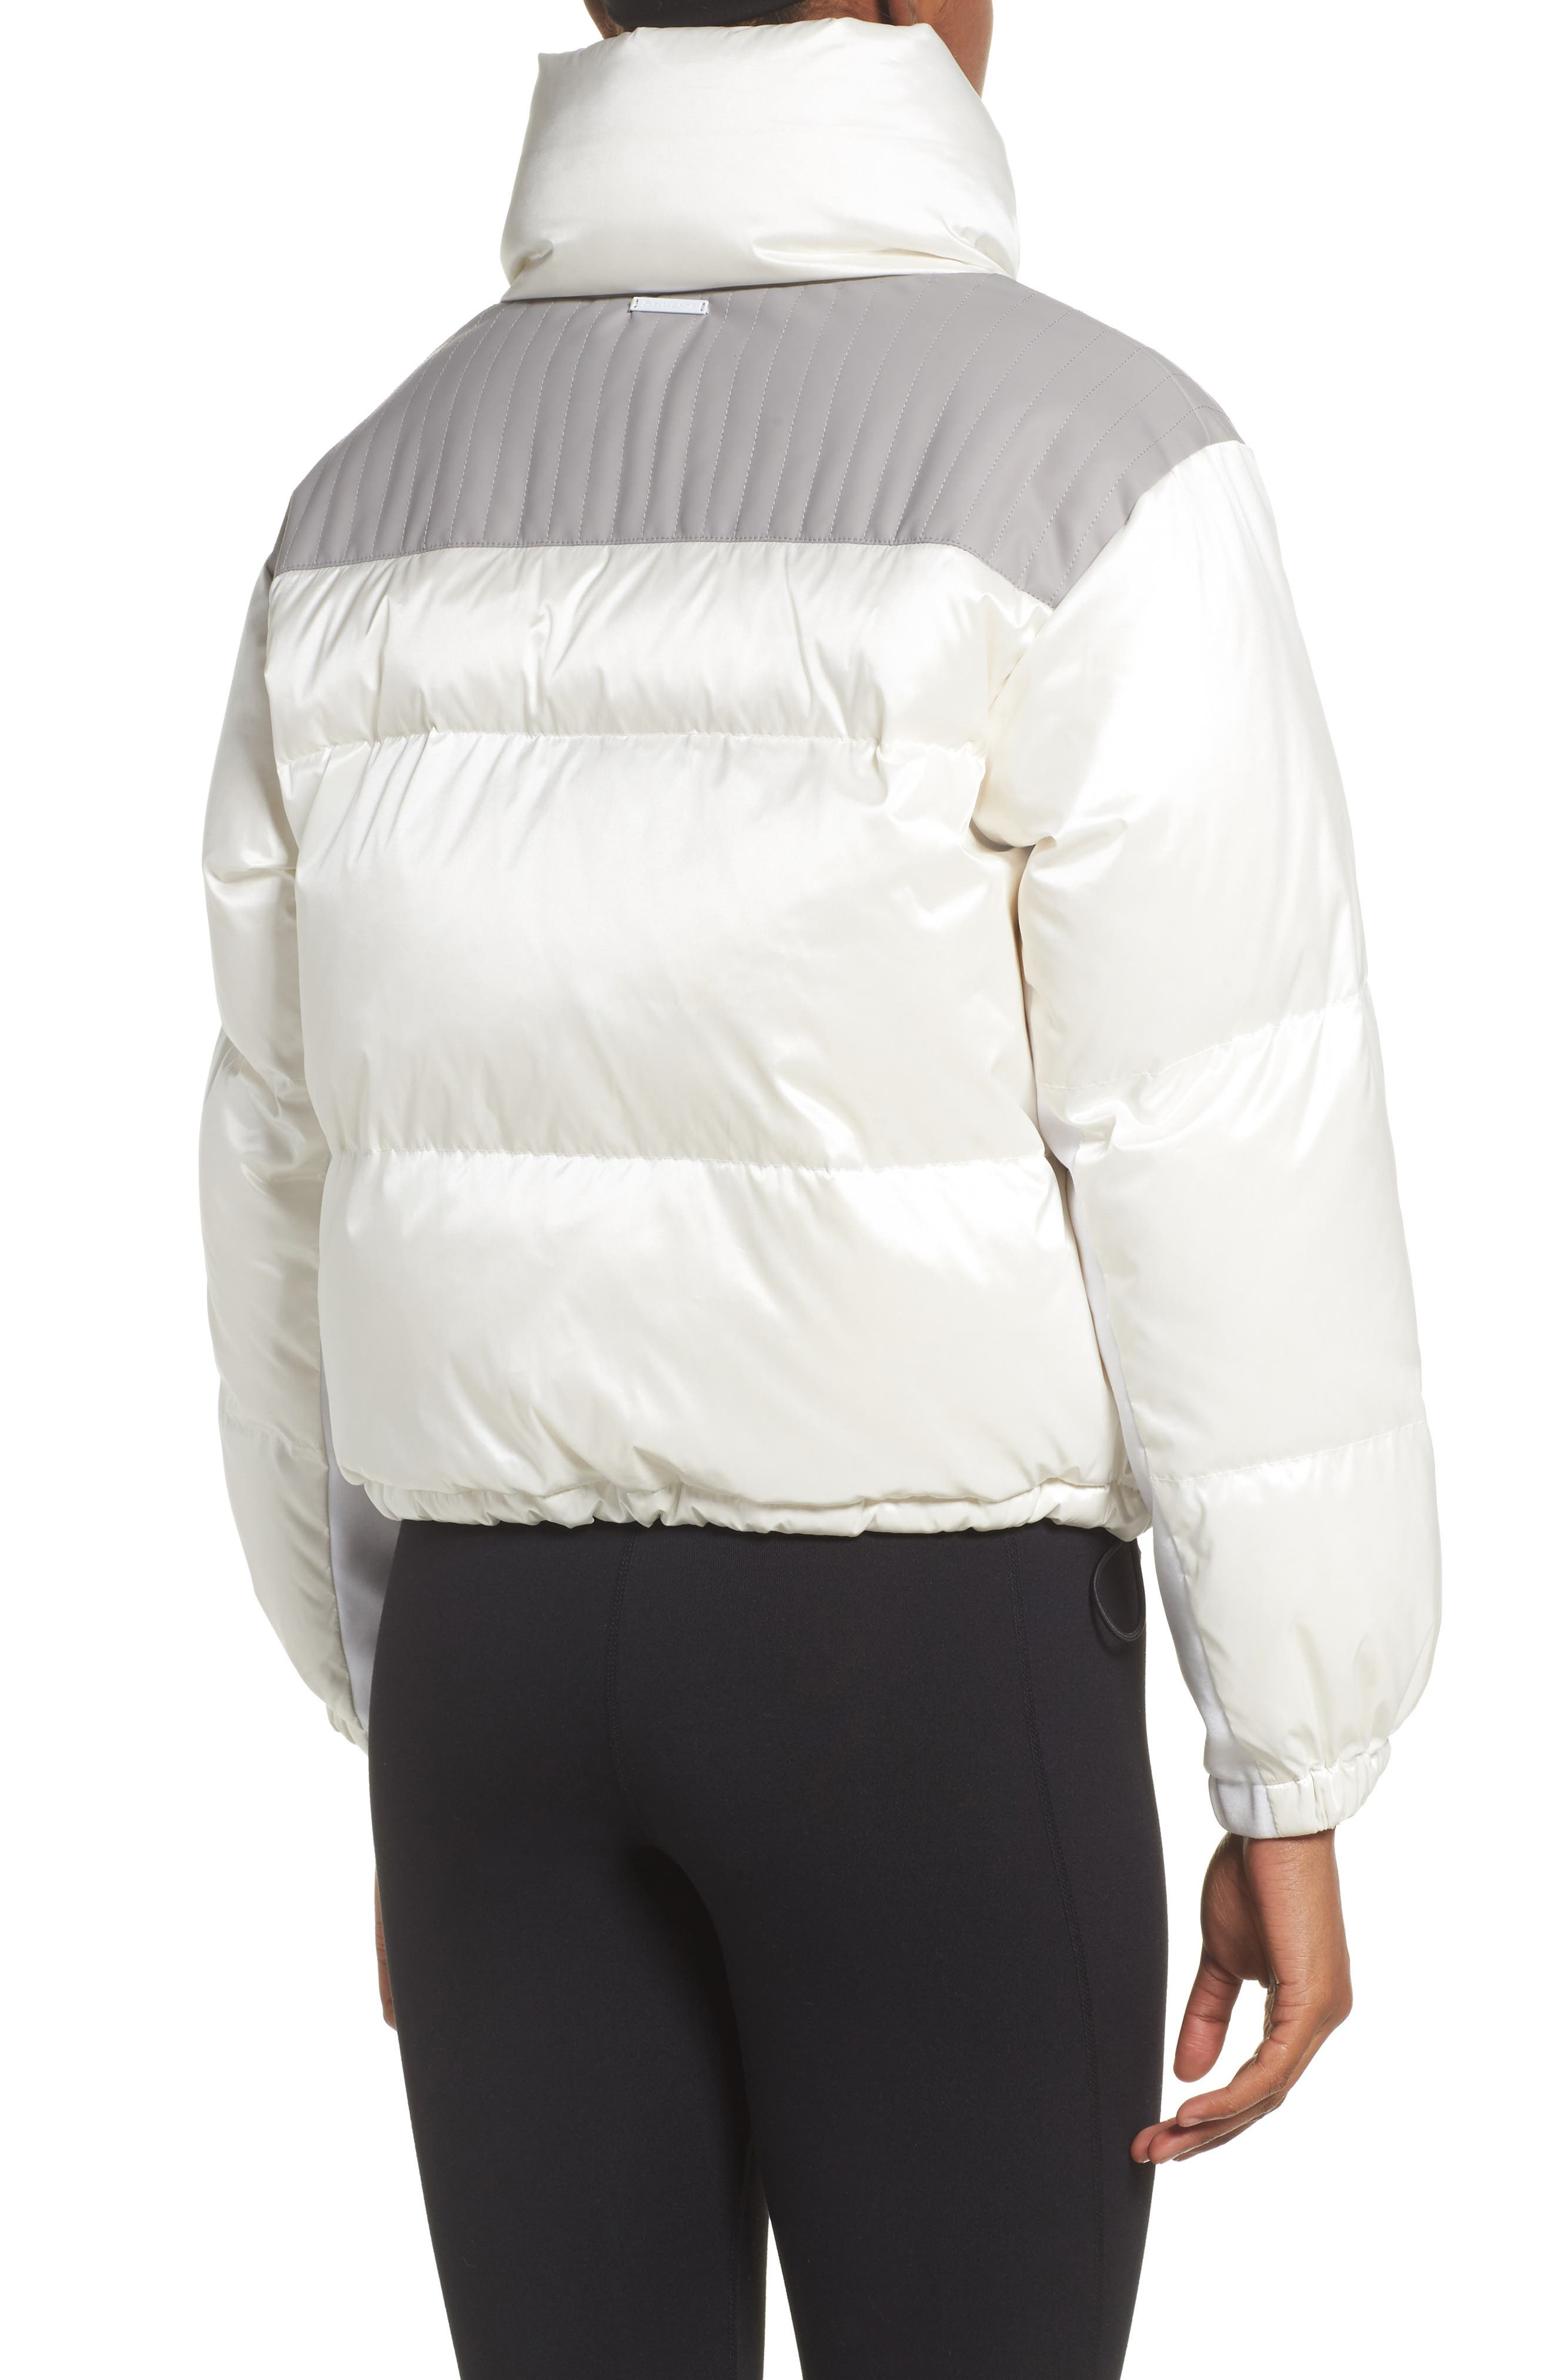 Reversible Puffer Jacket,                             Alternate thumbnail 3, color,                             WHITE/HEATHER GREY